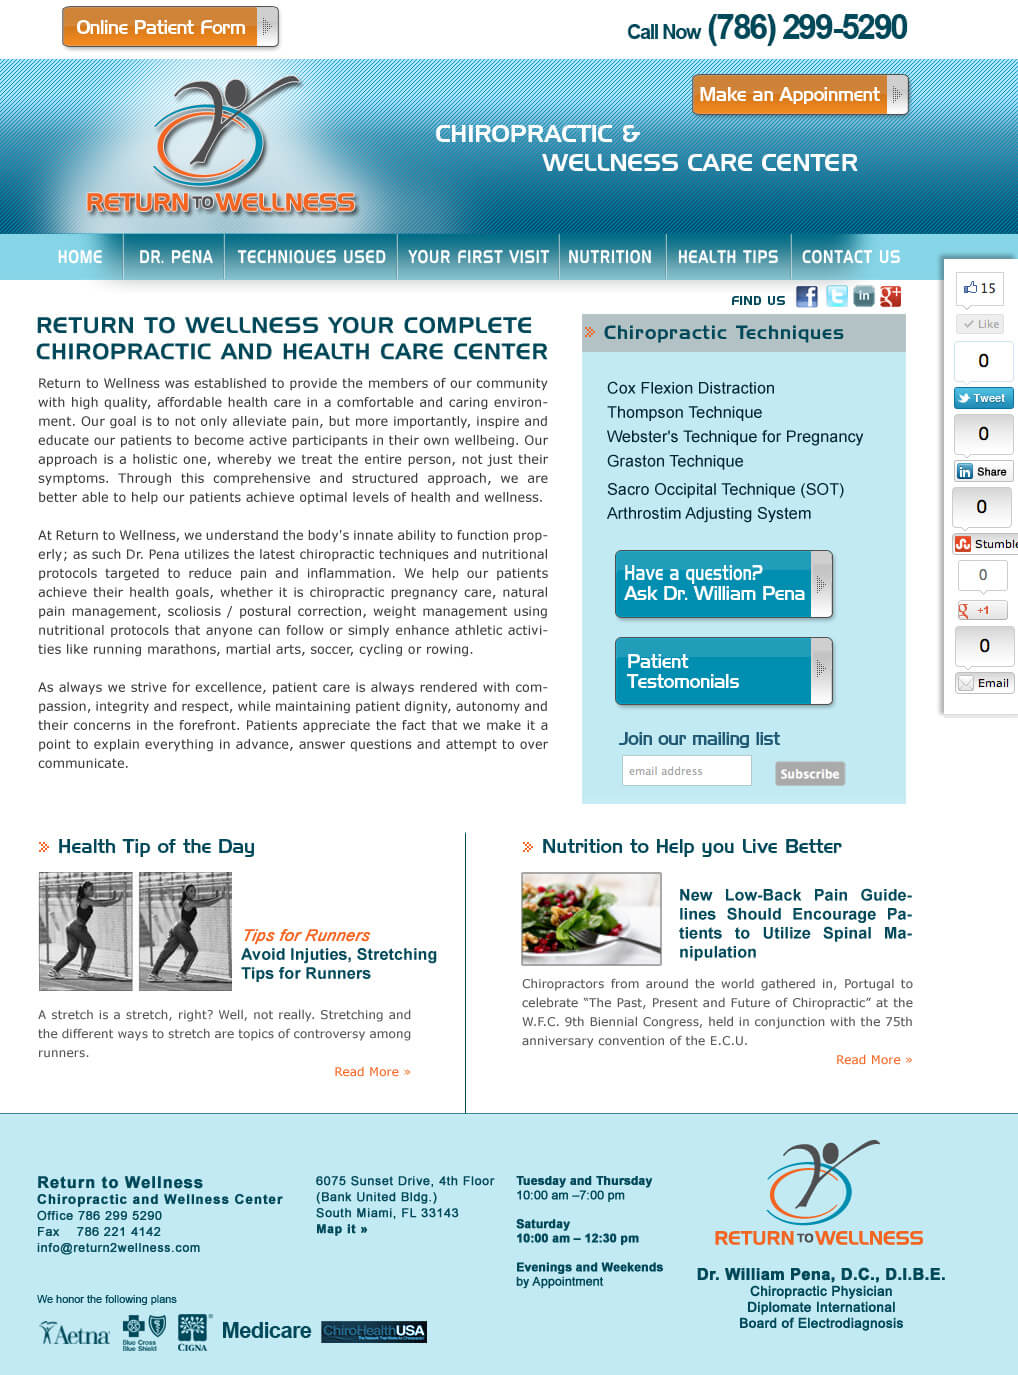 Chiropractor-Web-Site-Design-Miami